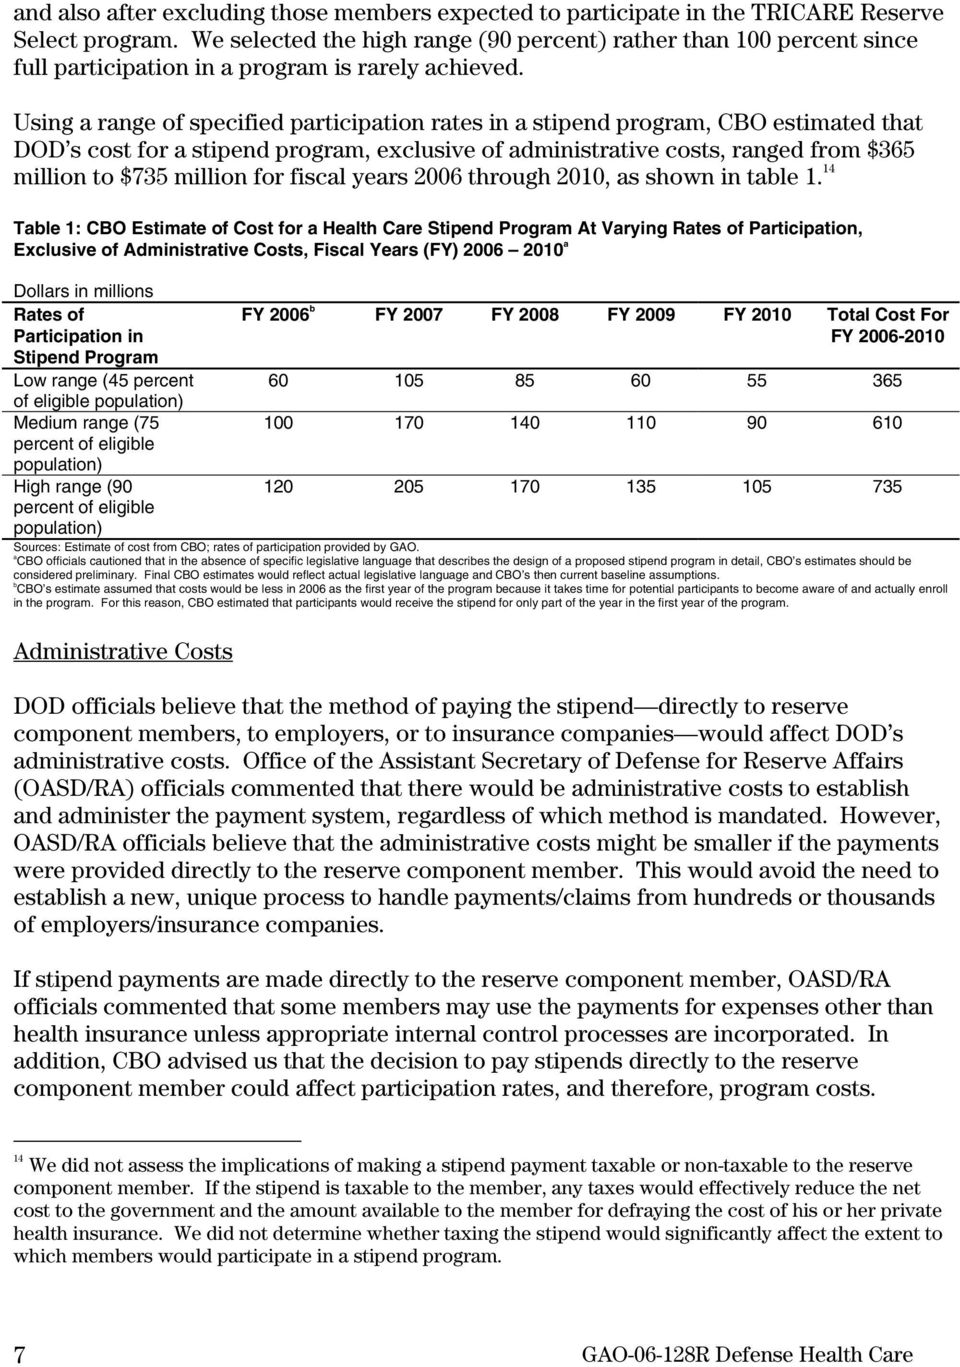 Using a range of specified participation rates in a stipend program, CBO estimated that DOD s cost for a stipend program, exclusive of administrative costs, ranged from $365 million to $735 million